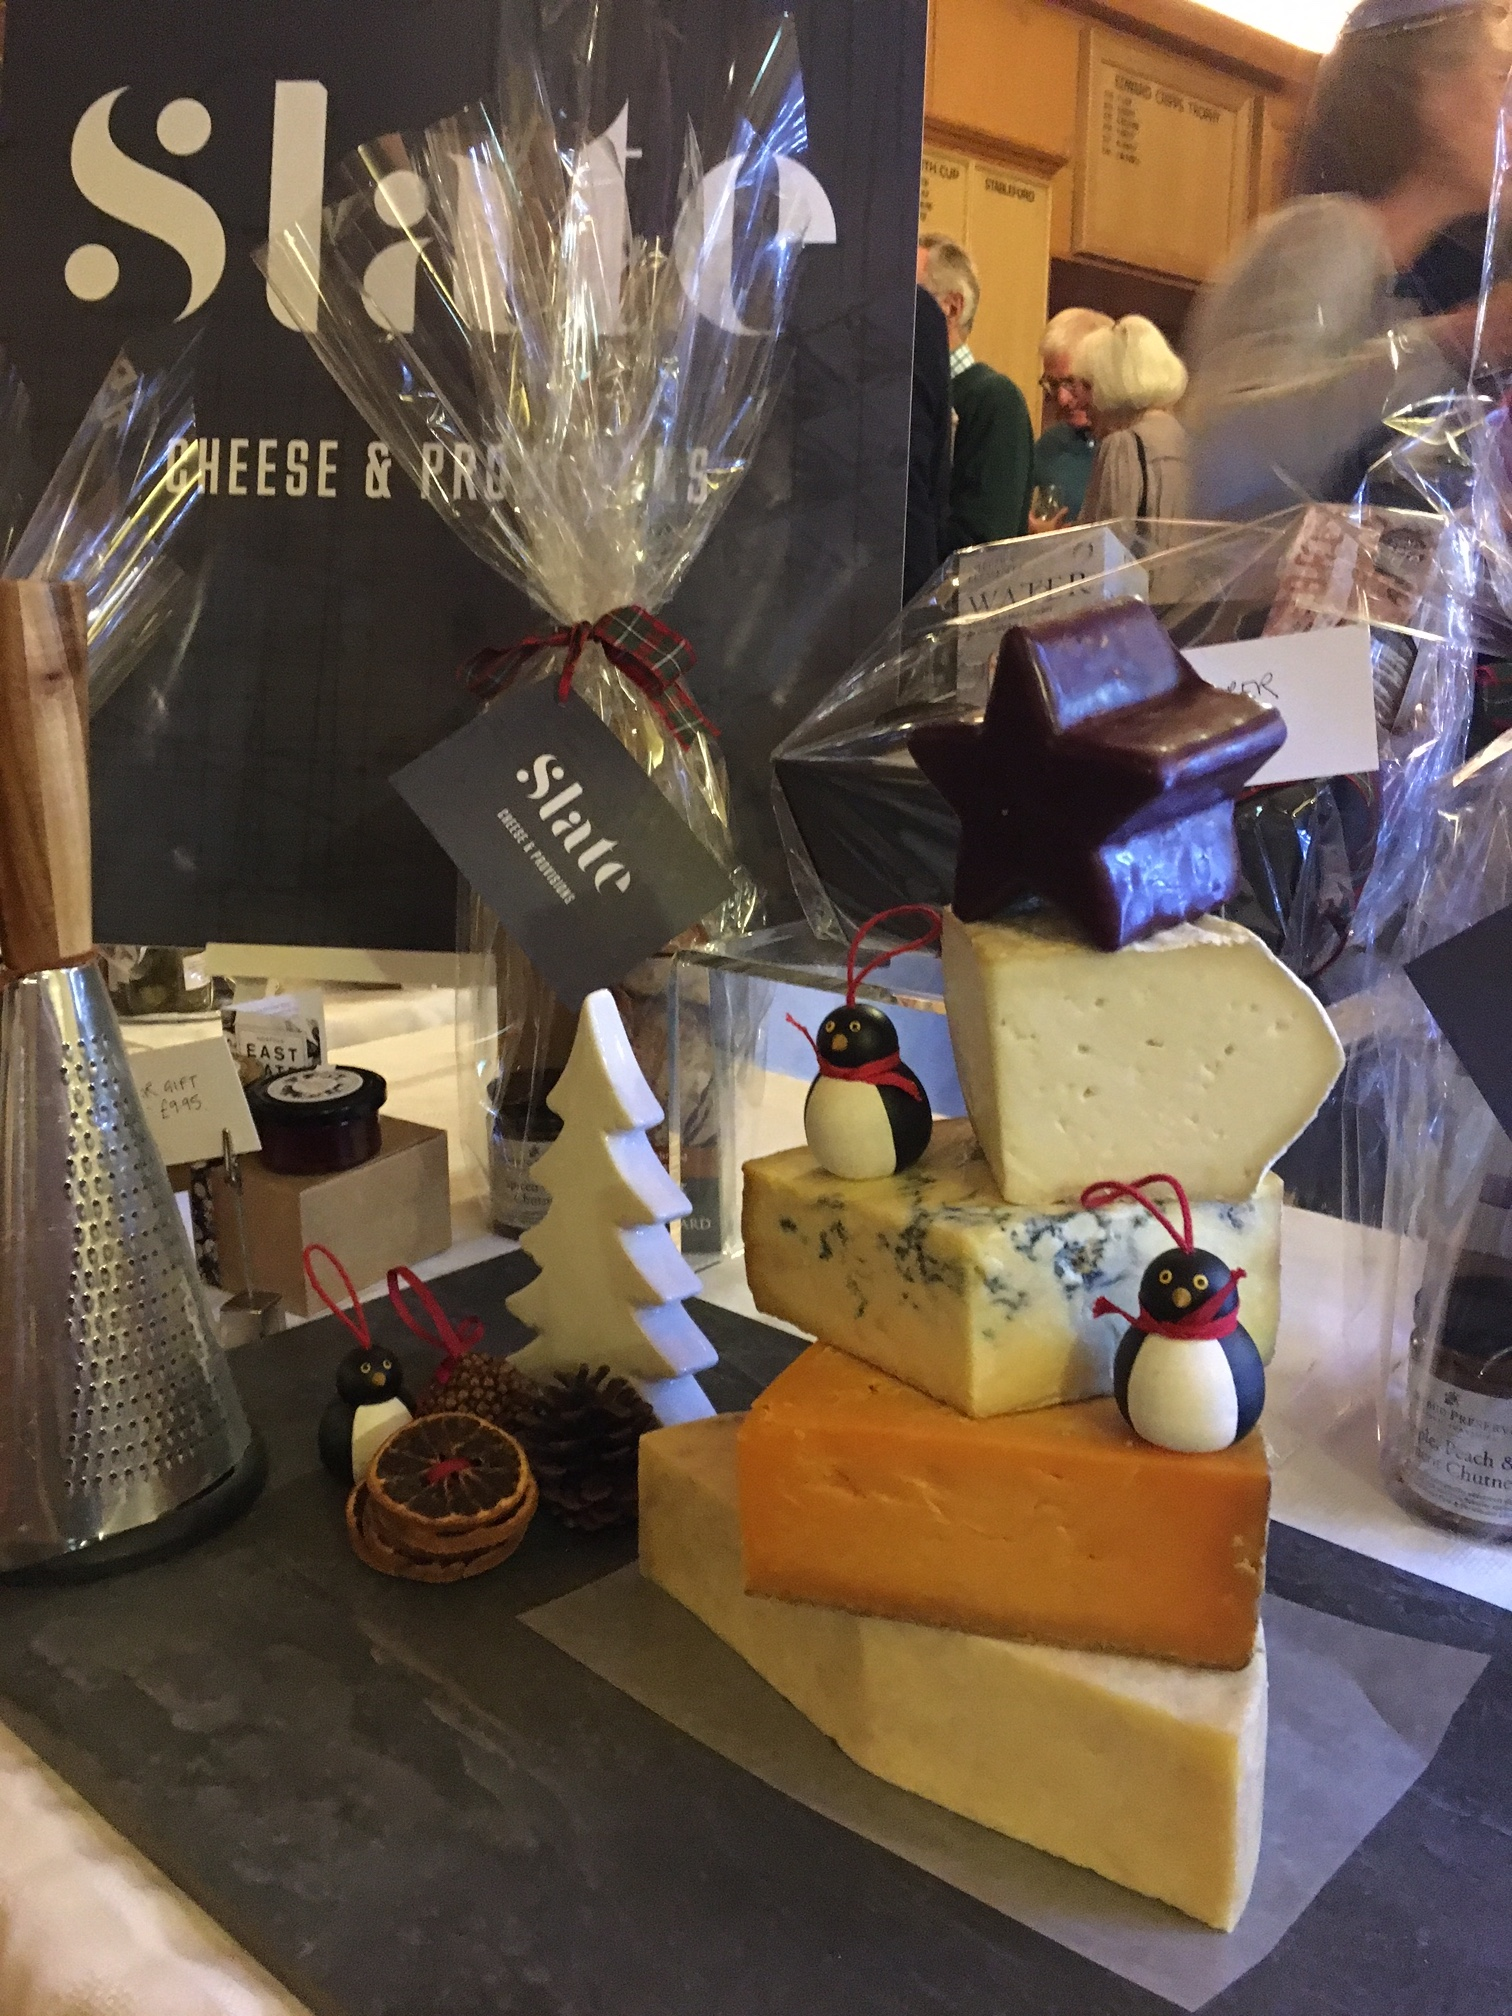 Slate Cheese Christmas Tree - Man Like Wine and Slate Cheese Tasting Evening